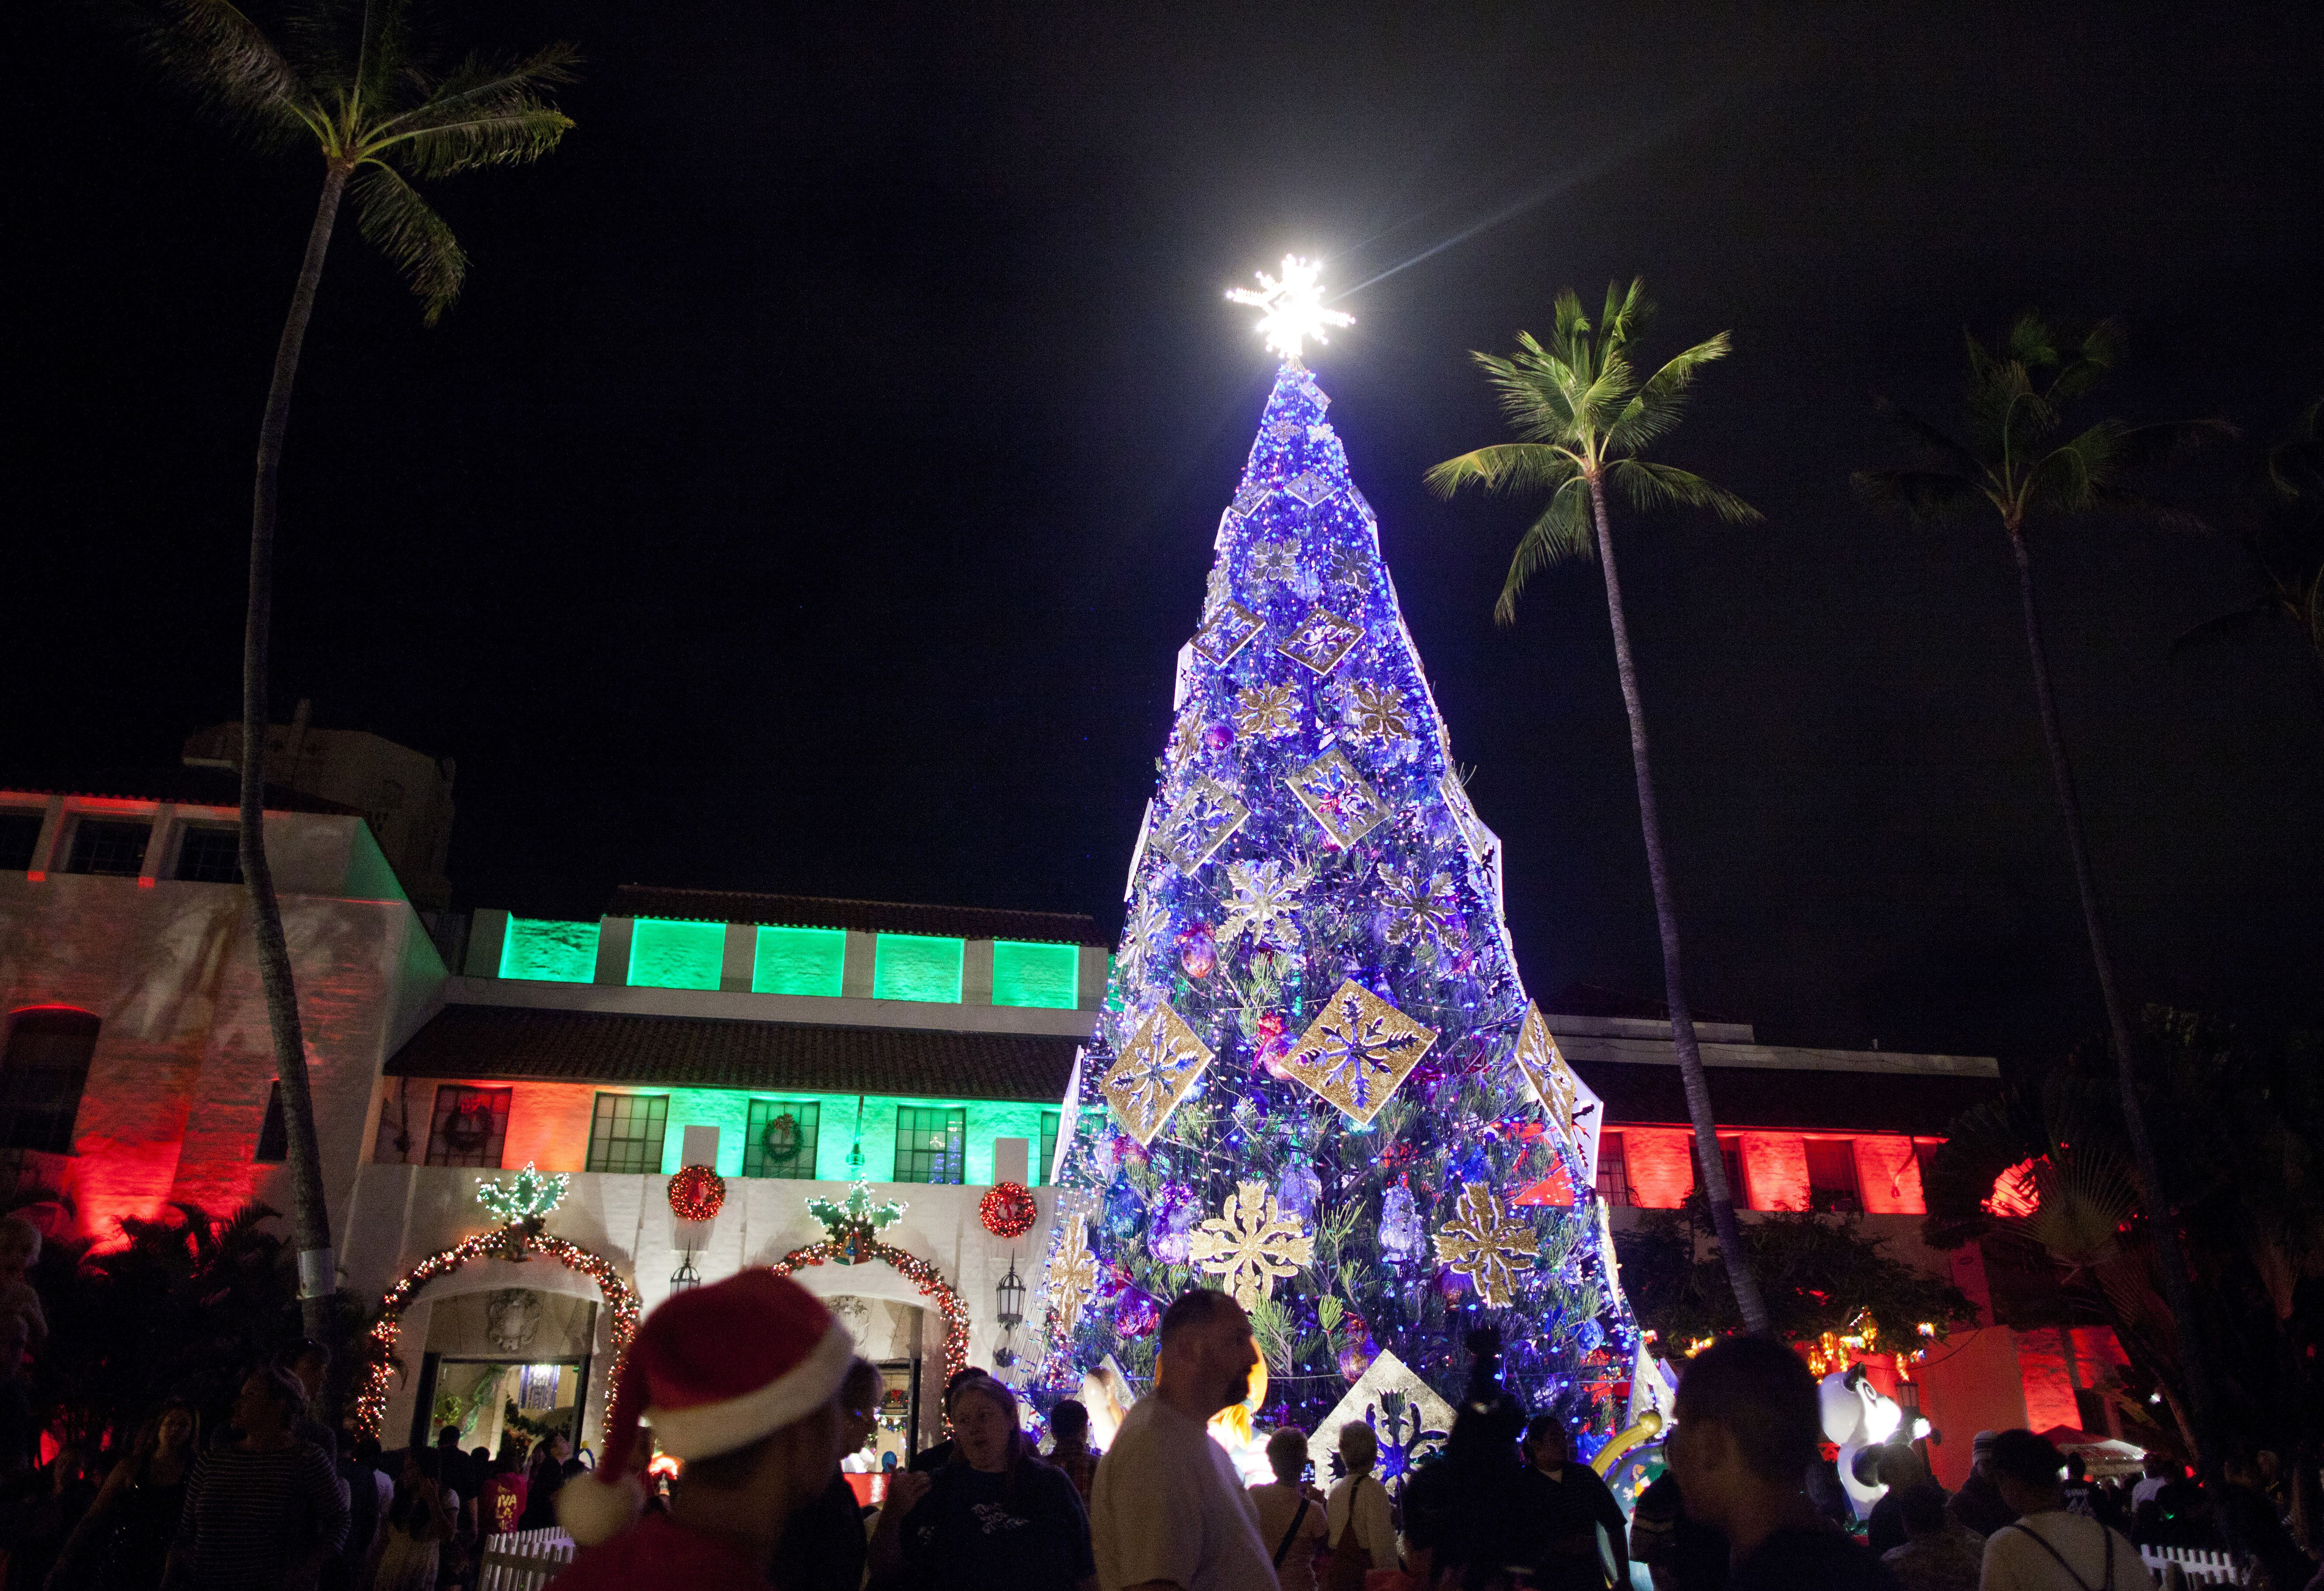 Christmas Festivities 2020 Oahu Things to Do for Christmas on Oahu